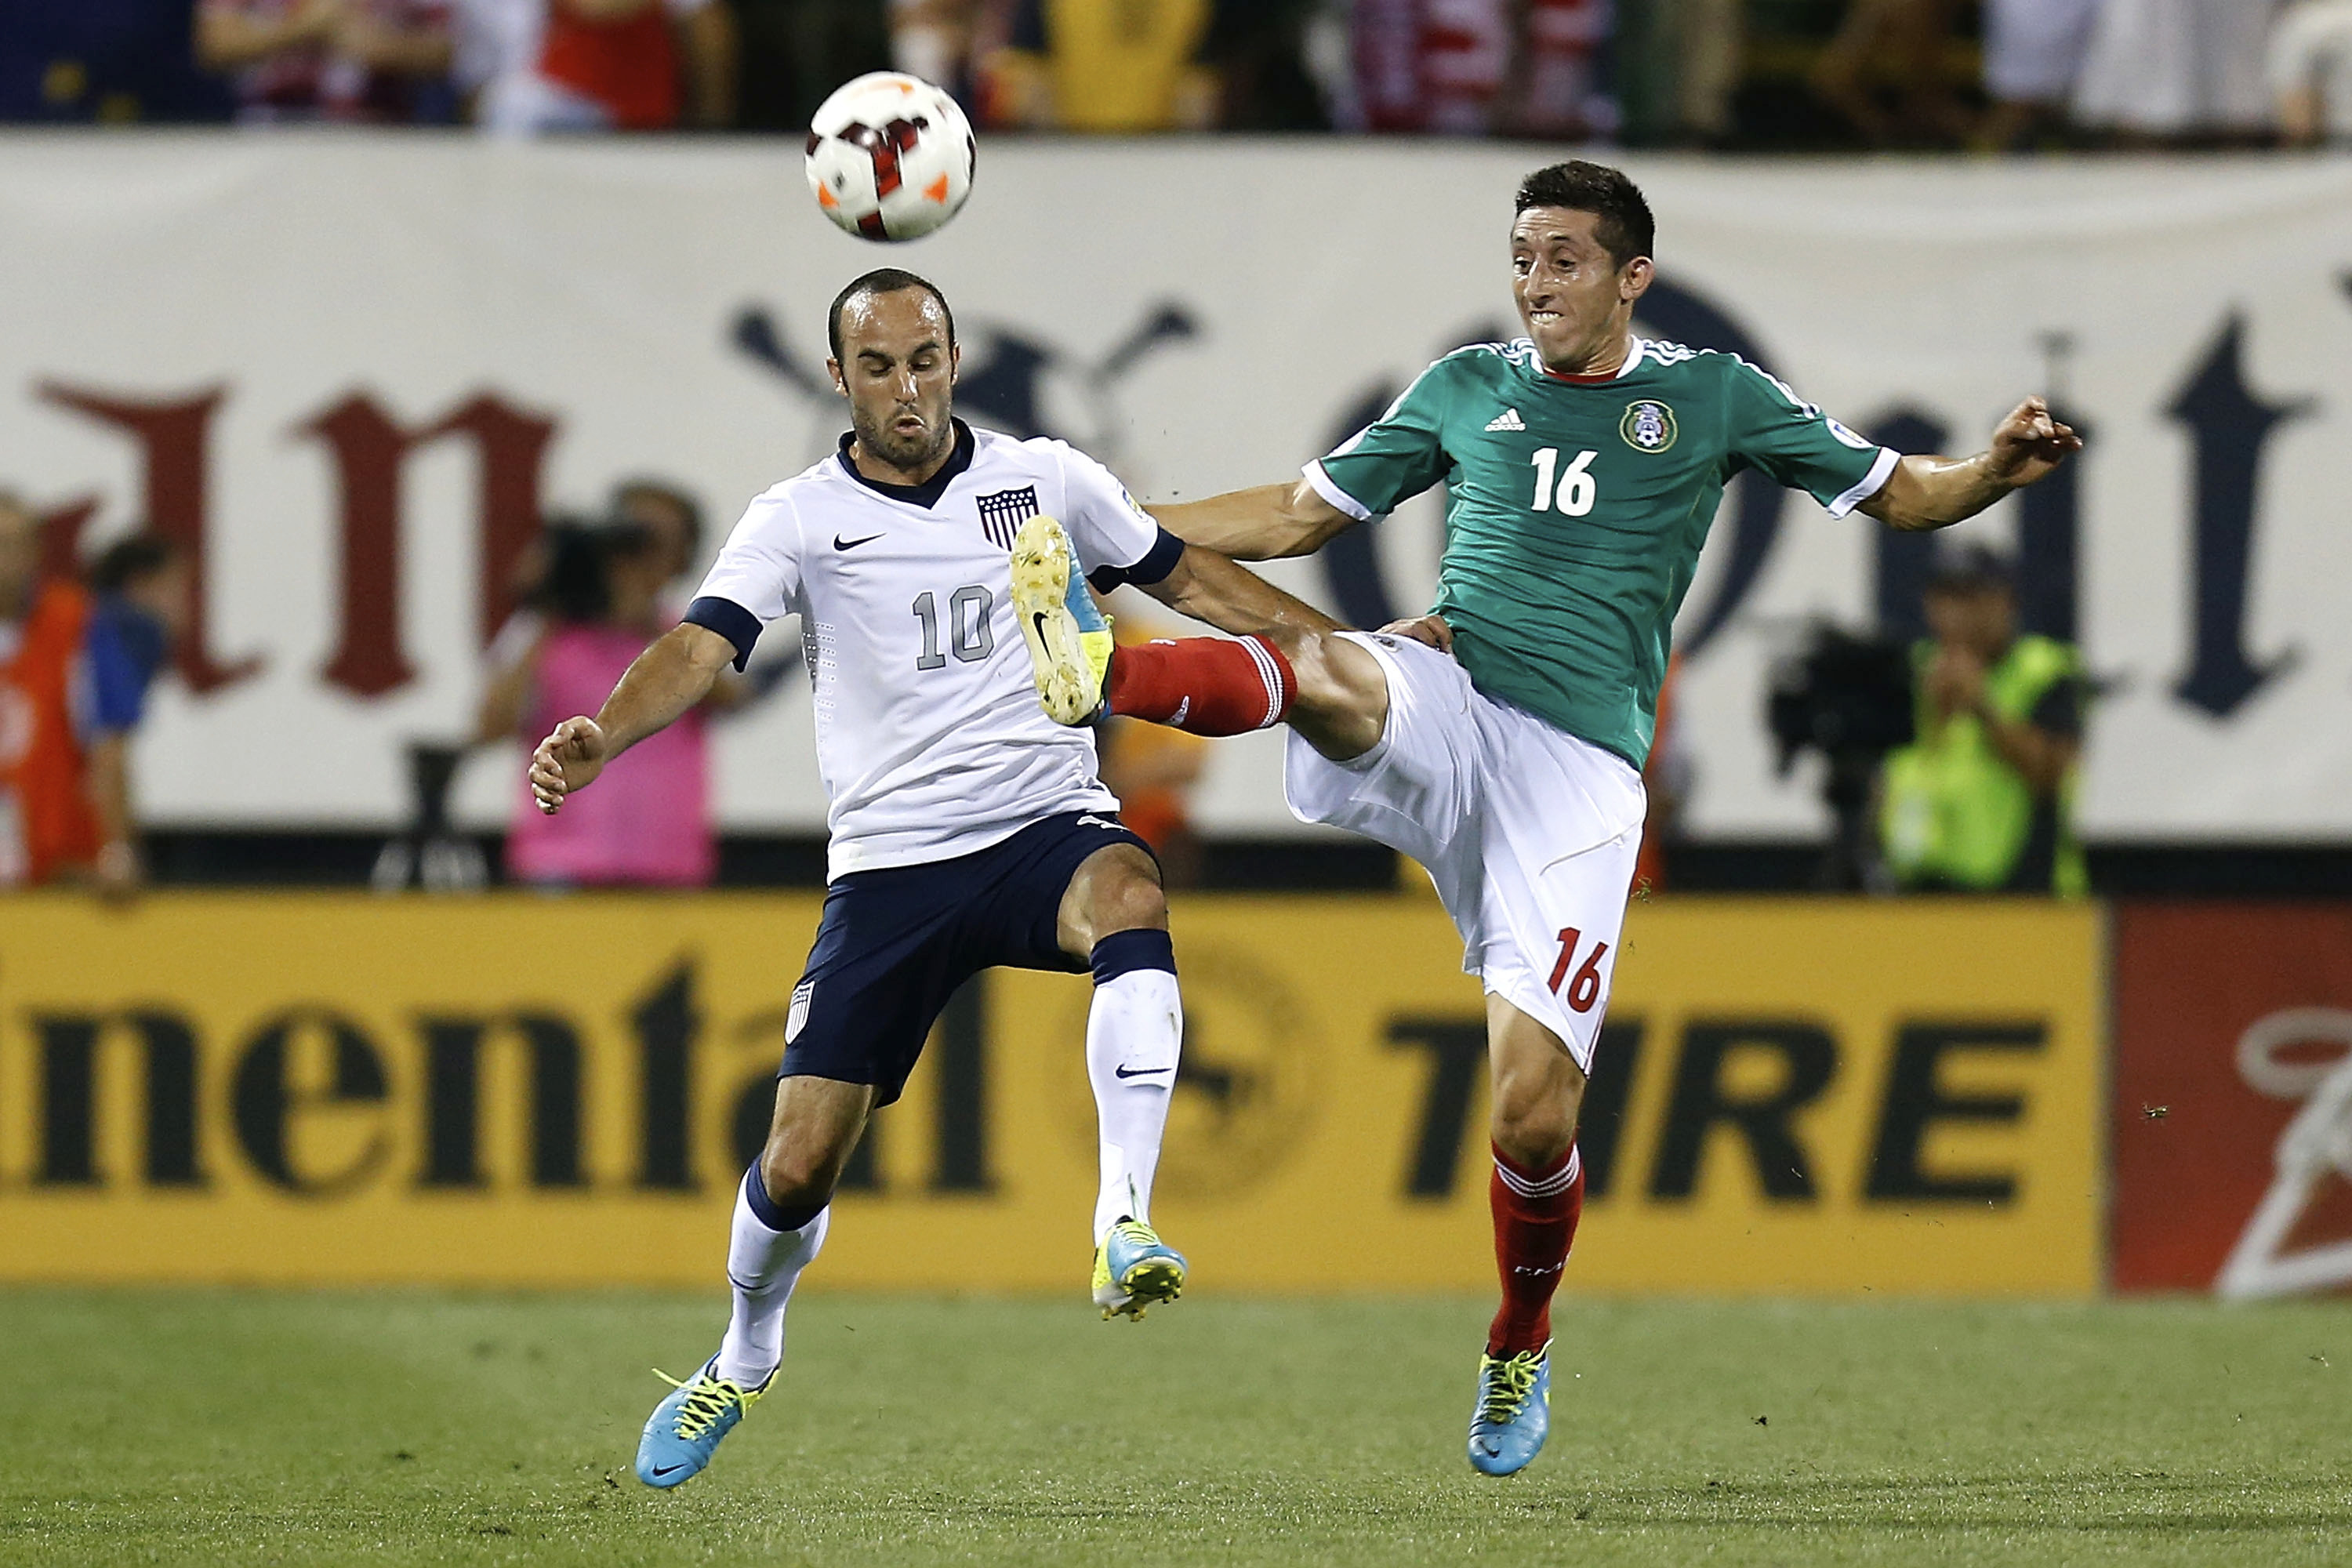 COLUMBUS, UNITED STATES - SEPTEMBER 10: Landon Donovan of the US and Hector Herrera of Mexico fight for the ball during a match between United States and Mexico as part of the CONCACAF Qualifiers at Columbus Crew Stadium on September 10, 2013 in Columbus, United States.